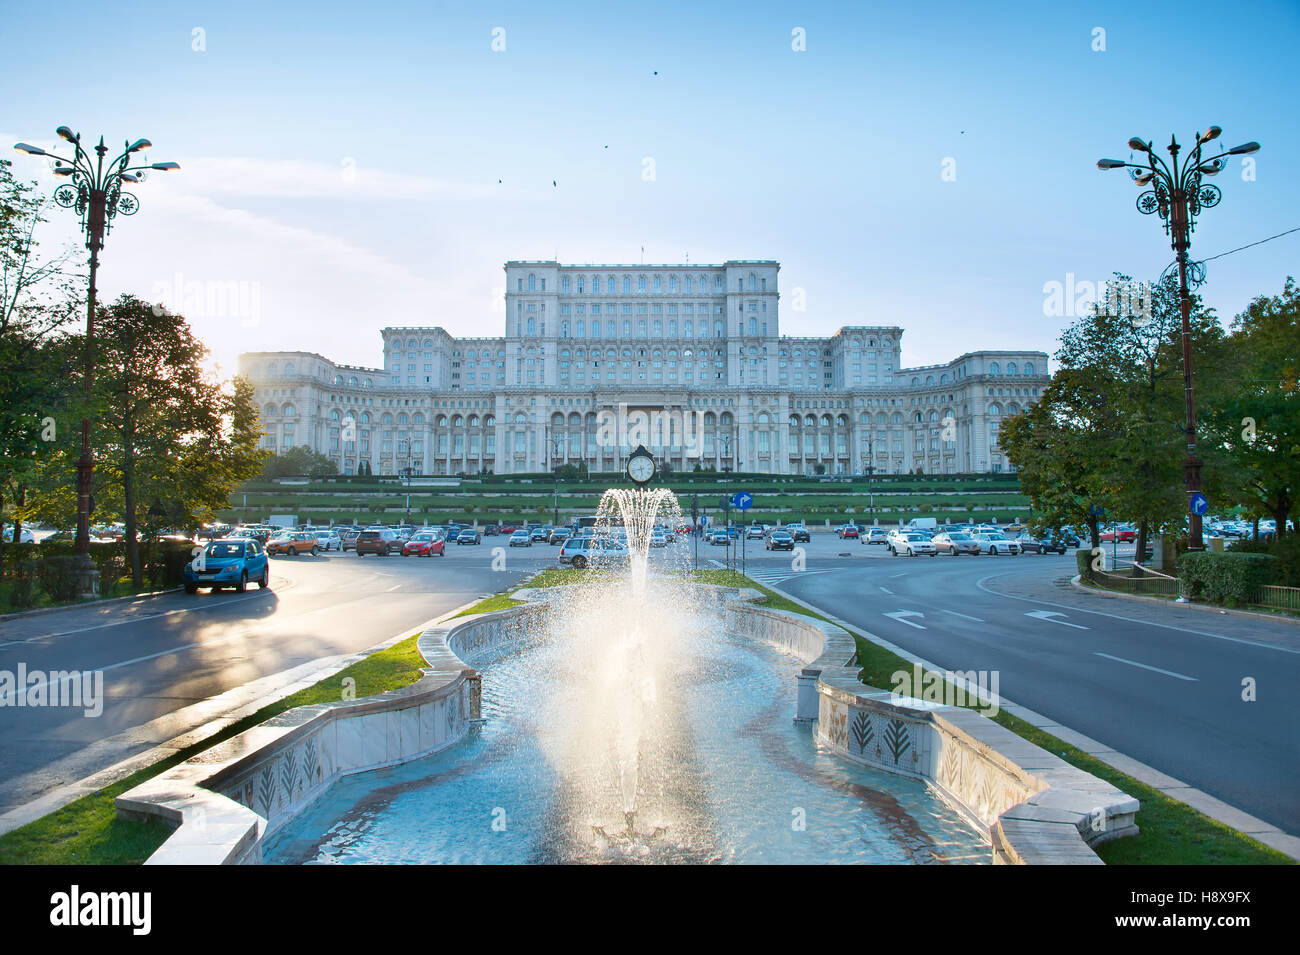 Bucharest Parliament with fountain in front of it. Romania - Stock Image